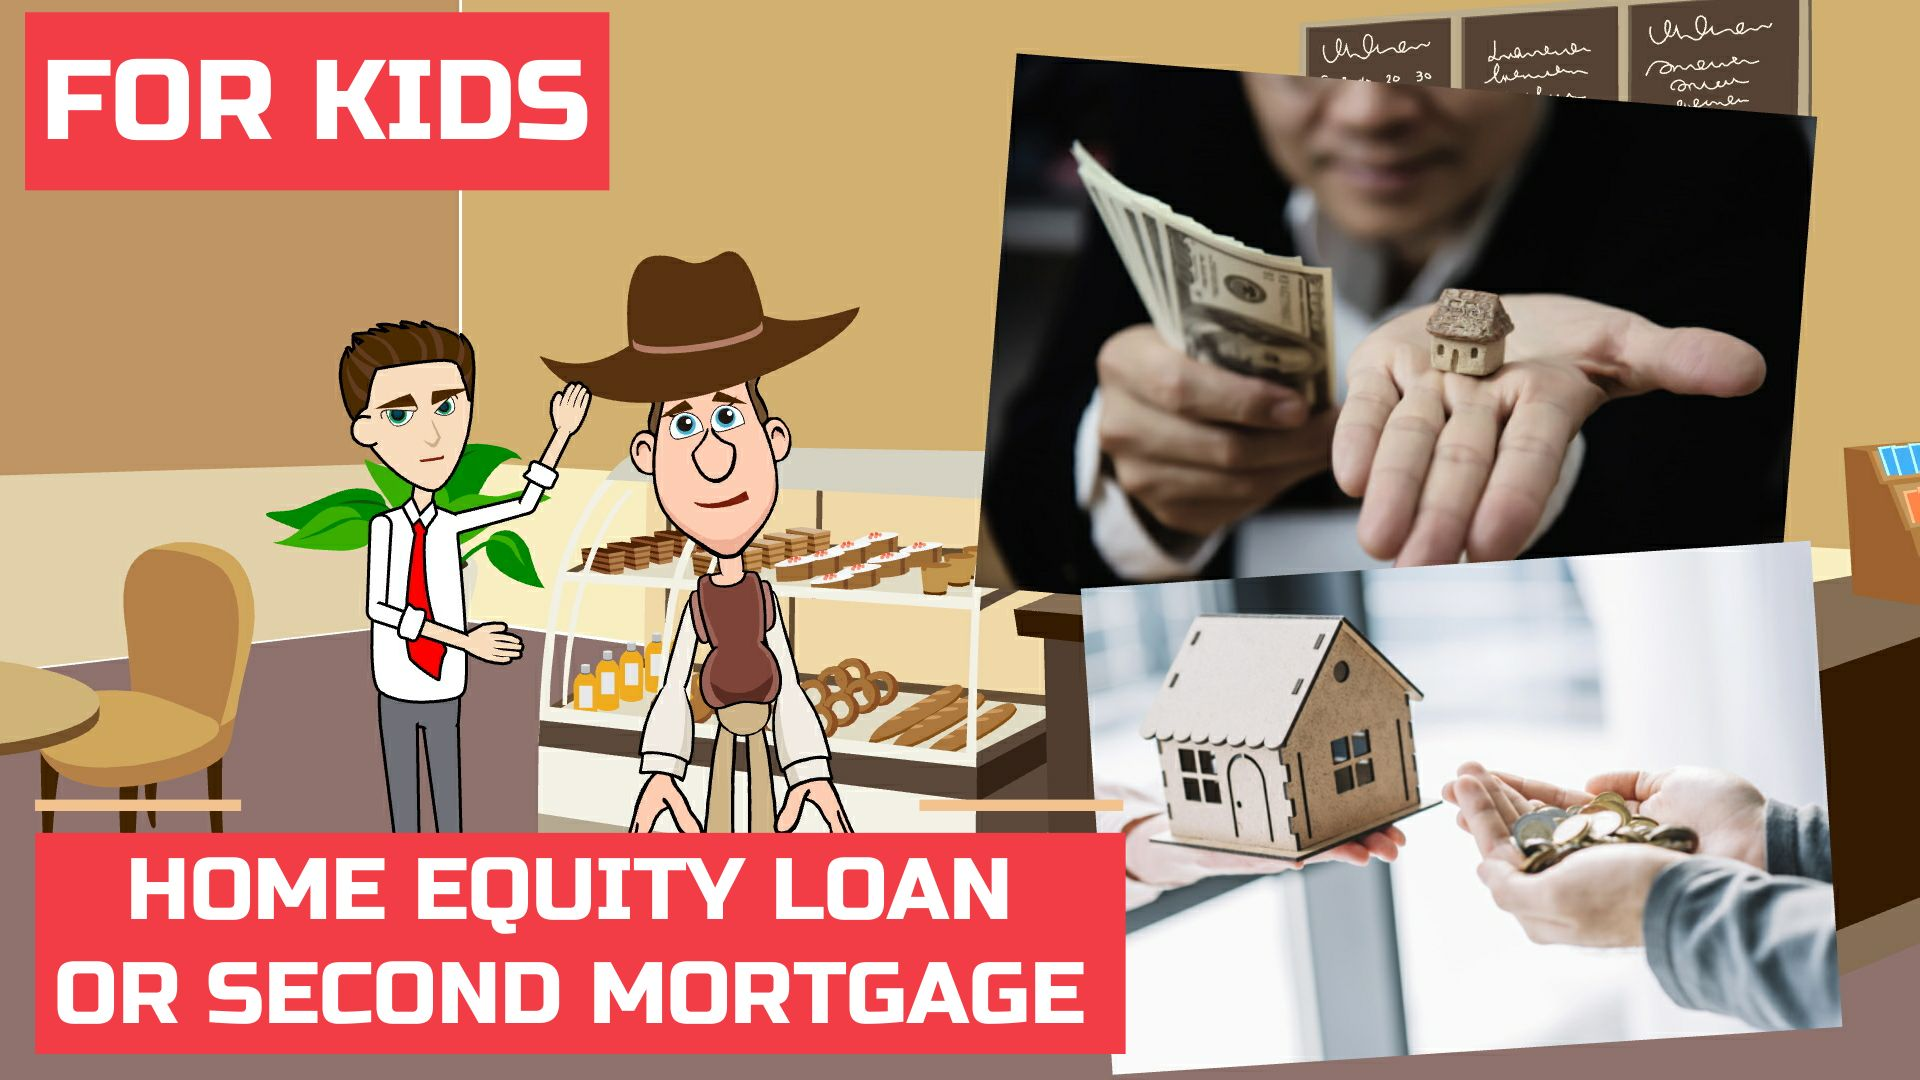 Home Equity Loan or Second Mortgage